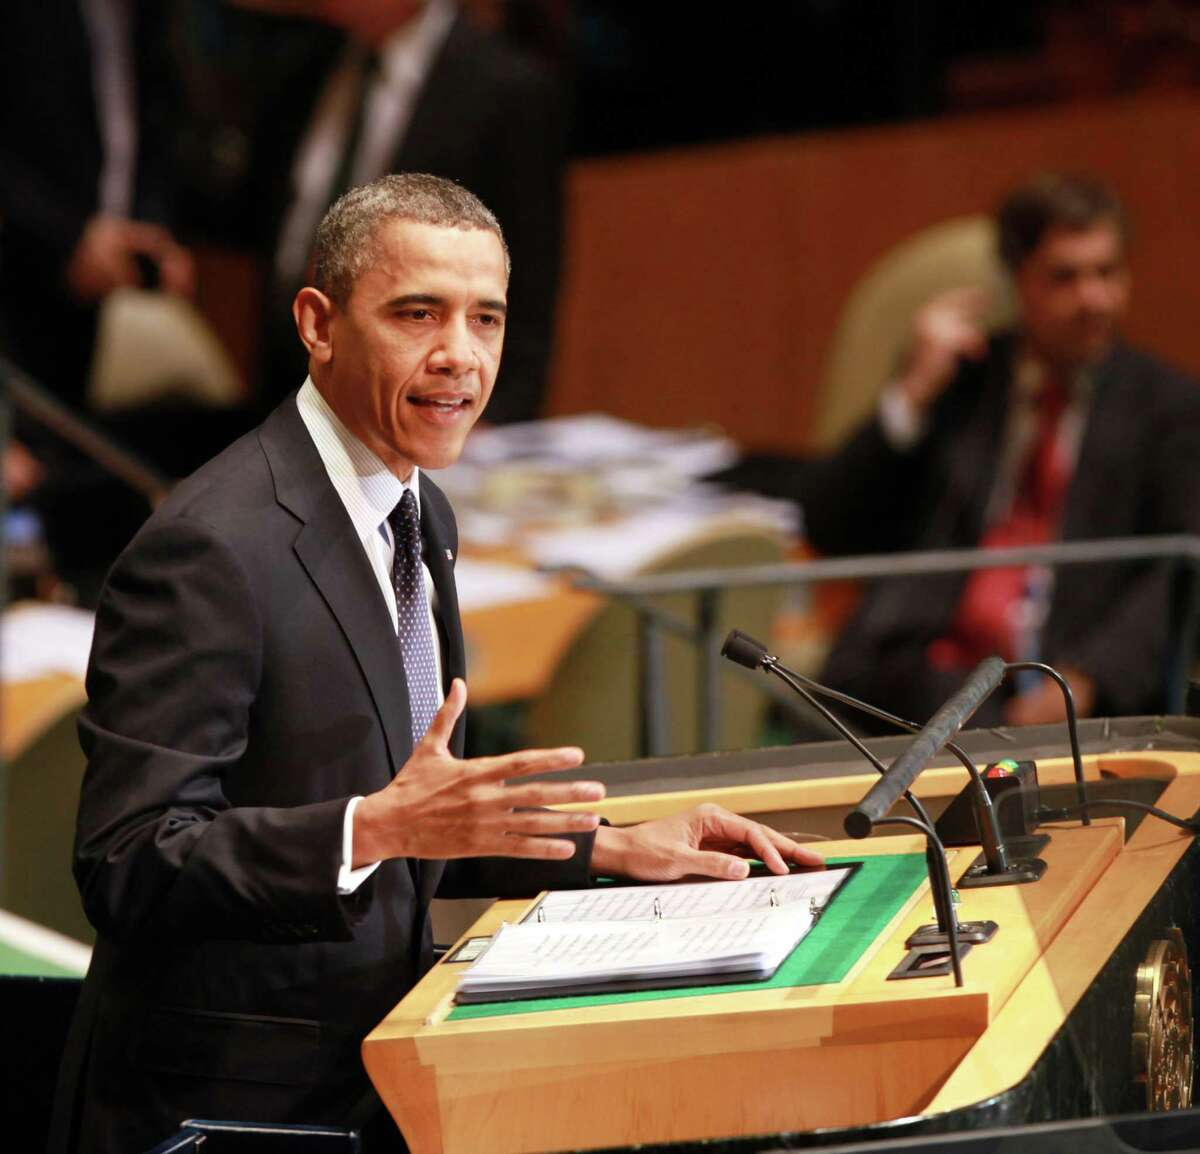 President Barack Obama said amid the protests over an anti-Muslim film that tolerance goes both ways.